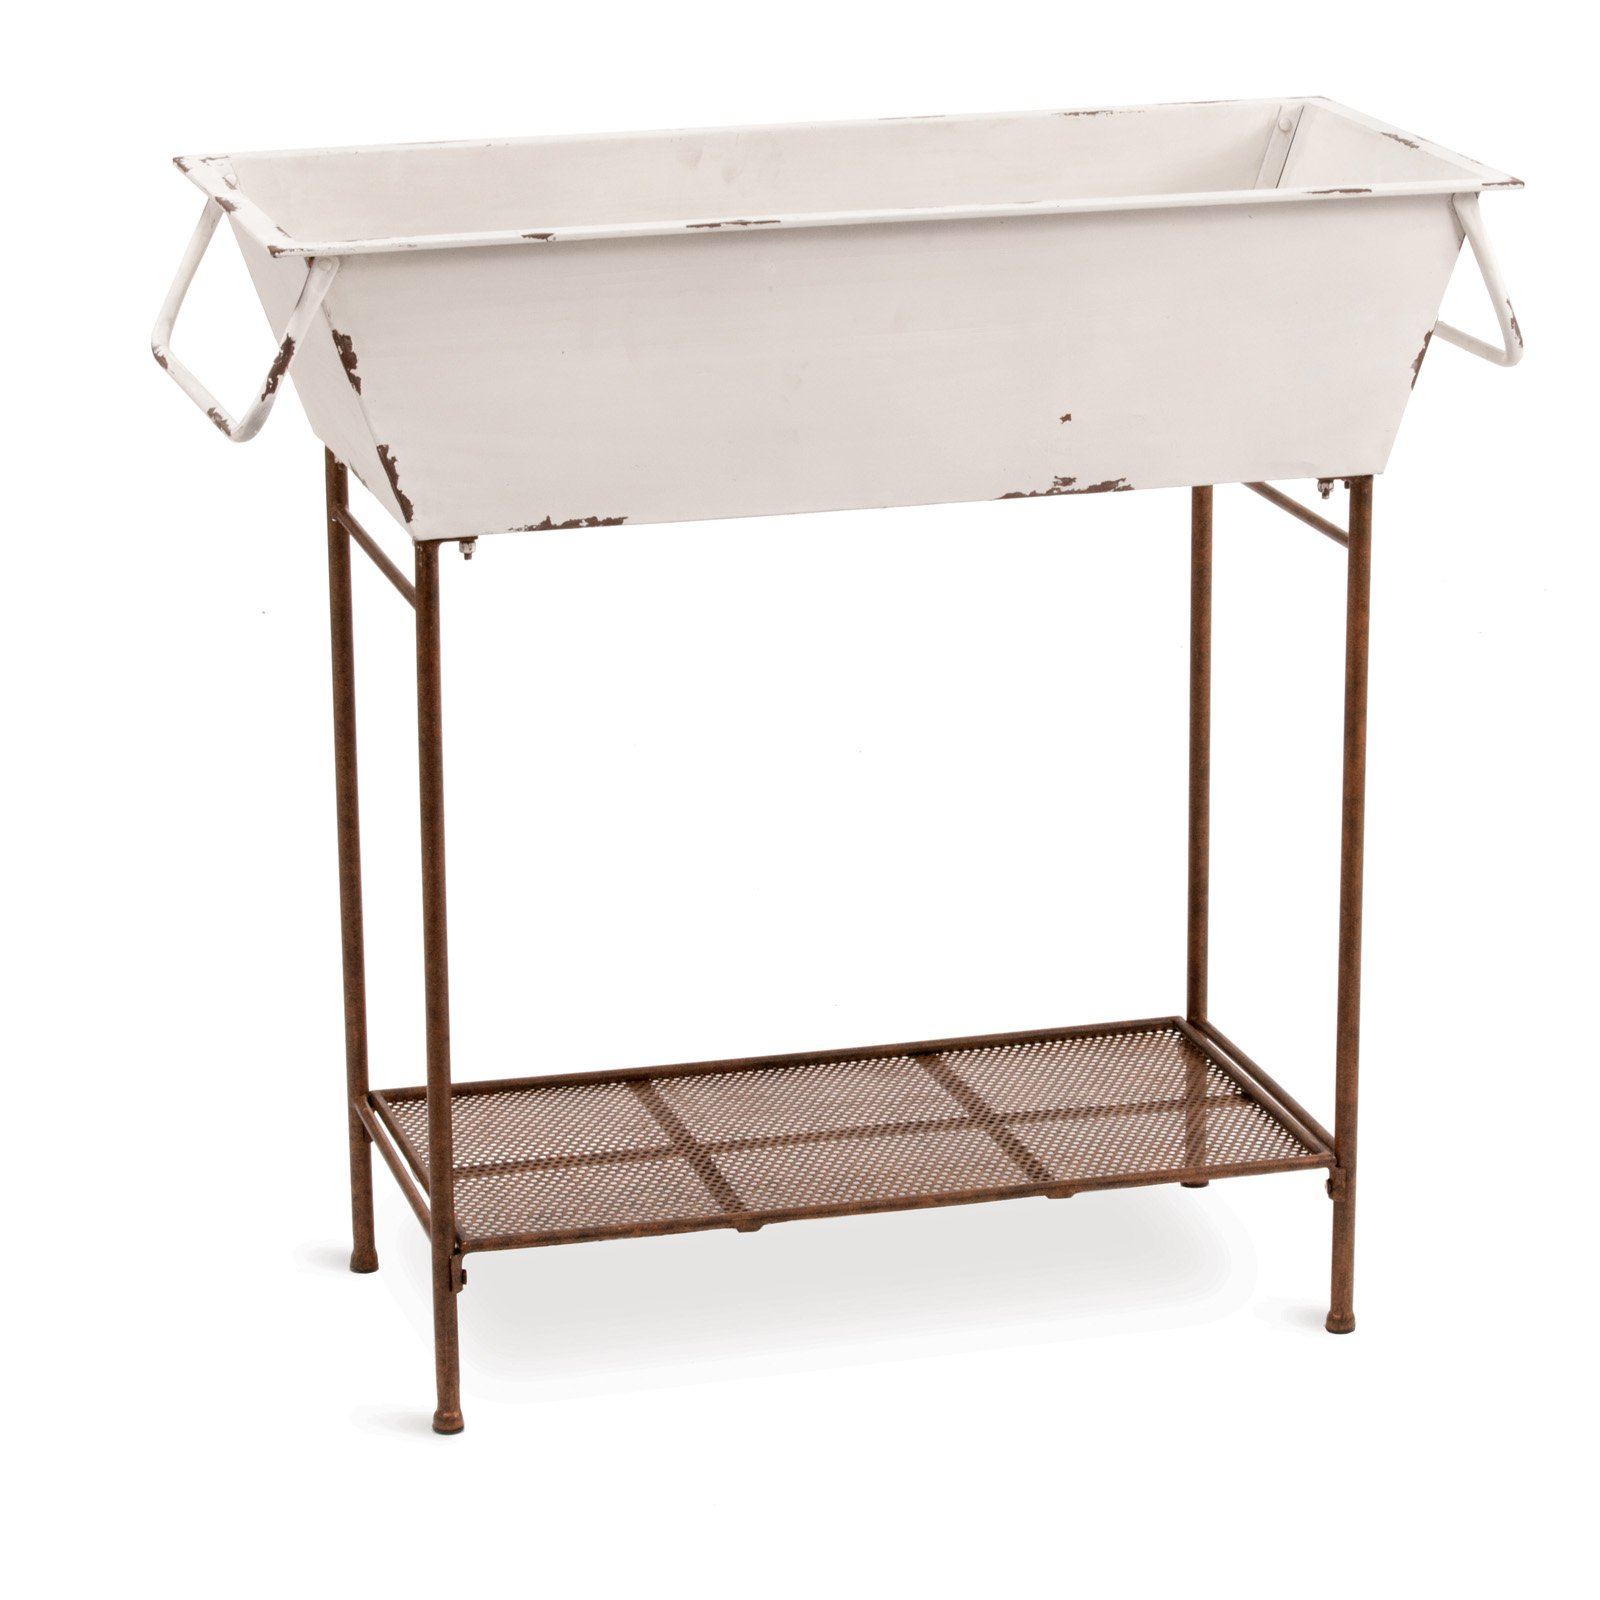 Deer Park Ironworks Large Tub Floor Planter Walmart Com